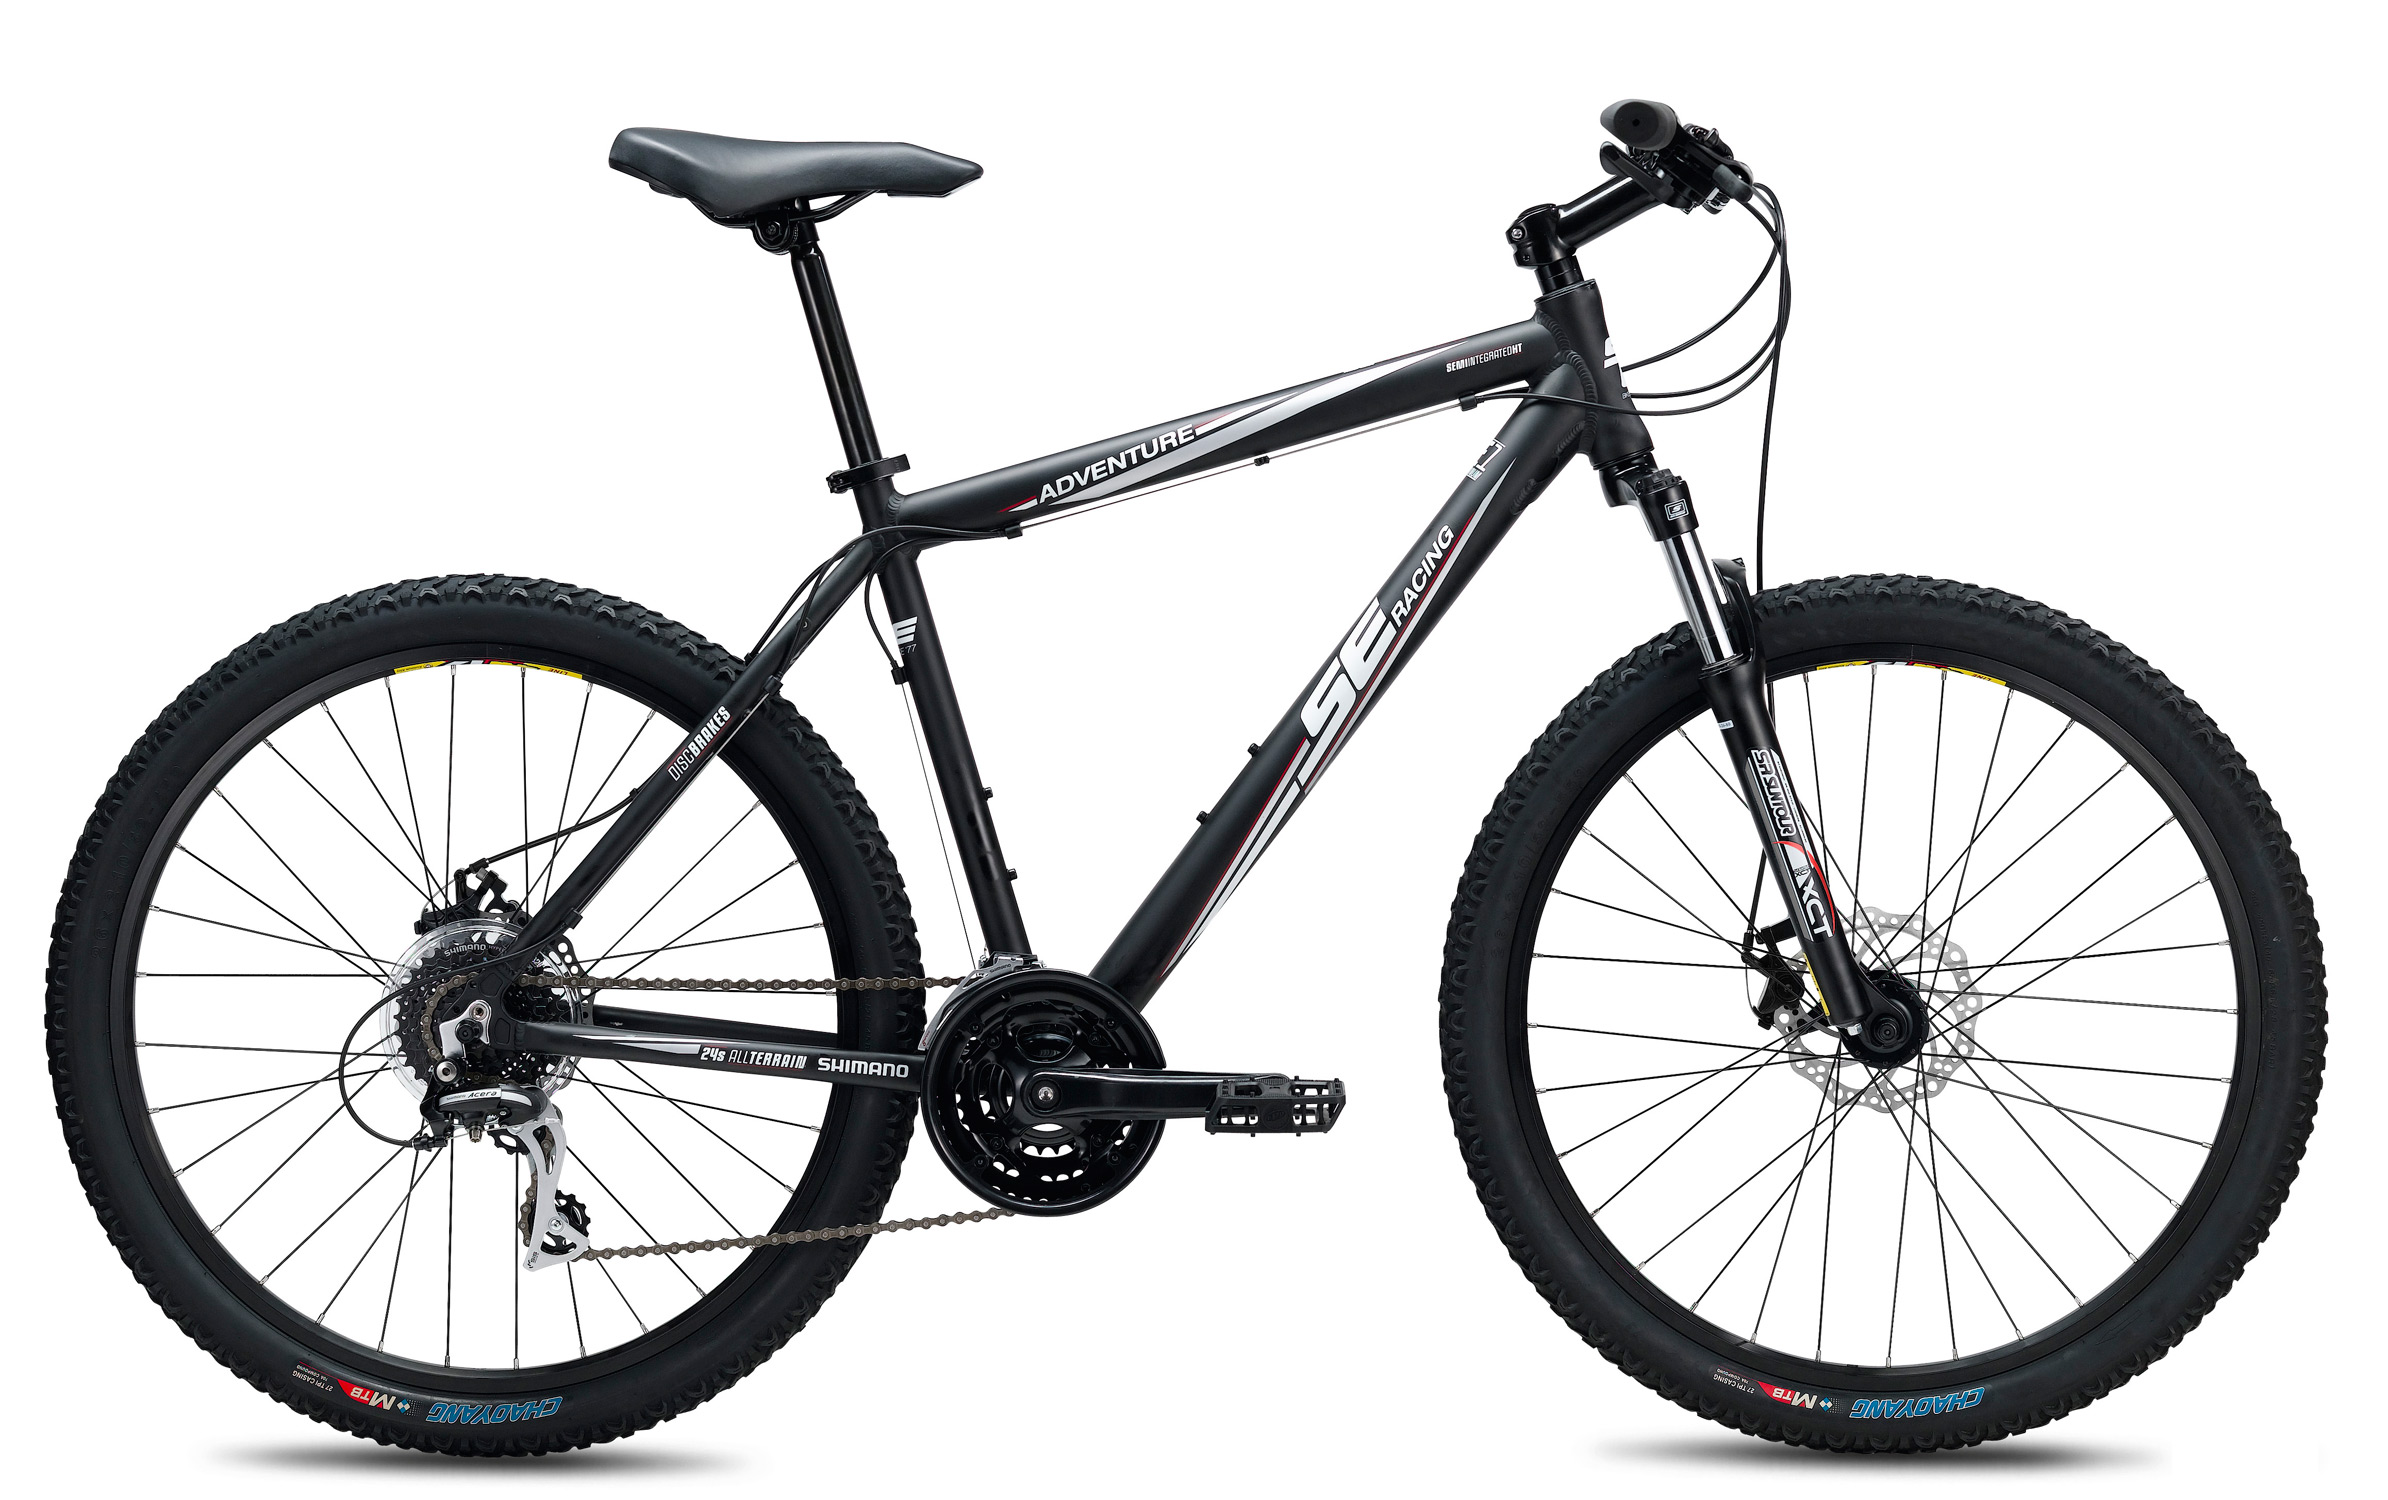 "MTB Key Features of the SE Adventure 24 Speed Bike: Sizes: S (17""), M (19""), L (21""); Step Through: S (15""), M (17"") Color(s): Step Over: 80% Matte Black, 80% Matte Brown; Step Through: Brown, Blue Main frame: SE 1 alloy, w/ semi-integrated headset, water bottle mount Rear triangle: SE 1 alloy, w/ replaceable hanger Fork: Suntour SF13 XCT, w/ steel steerer, coil spring w/ preload adjustment, 80mm travel Crankset: Wheel Top, 42/34/24T, 8-speed Bottom bracket: Cartridge Pedals: 1-piece resin body, w/ steel axle Front derailleur: Shimano Altus, band type 31.8mm Rear derailleur: Shimano Acera, 8-speed Shifters: Shimano EF-40 EZ-Fire, 24-speed Cassette: Shimano Altus, 11-32T, 8-speed Chain: Fixed Star, 8-speed Wheelset: Weinmann ZAC 19 32H double wall rims, alloy Formula hubs, ED Black spokes, brass nipples, steel quick releases Tires: Evolution, 27 tpi, 26"" x 2.1"" Brake set: HL DB-280 mechanical disc, 160mm rotors Brake levers: Shimano EF-40 2-finger Headset: Neco, 1 1/8"" semi-integrated w/ caged bearings Handlebar: Steel, 30mm rise, 6d sweep, 25.4mm clamp Stem: Steel, 25.4mm, +/- 20d Tape/grip: Kraton rubber, closed end Saddle: SE w/ foam padding, steel rails Seat post: Steel, 27.2mm x 300mm Weight: - $399.00"